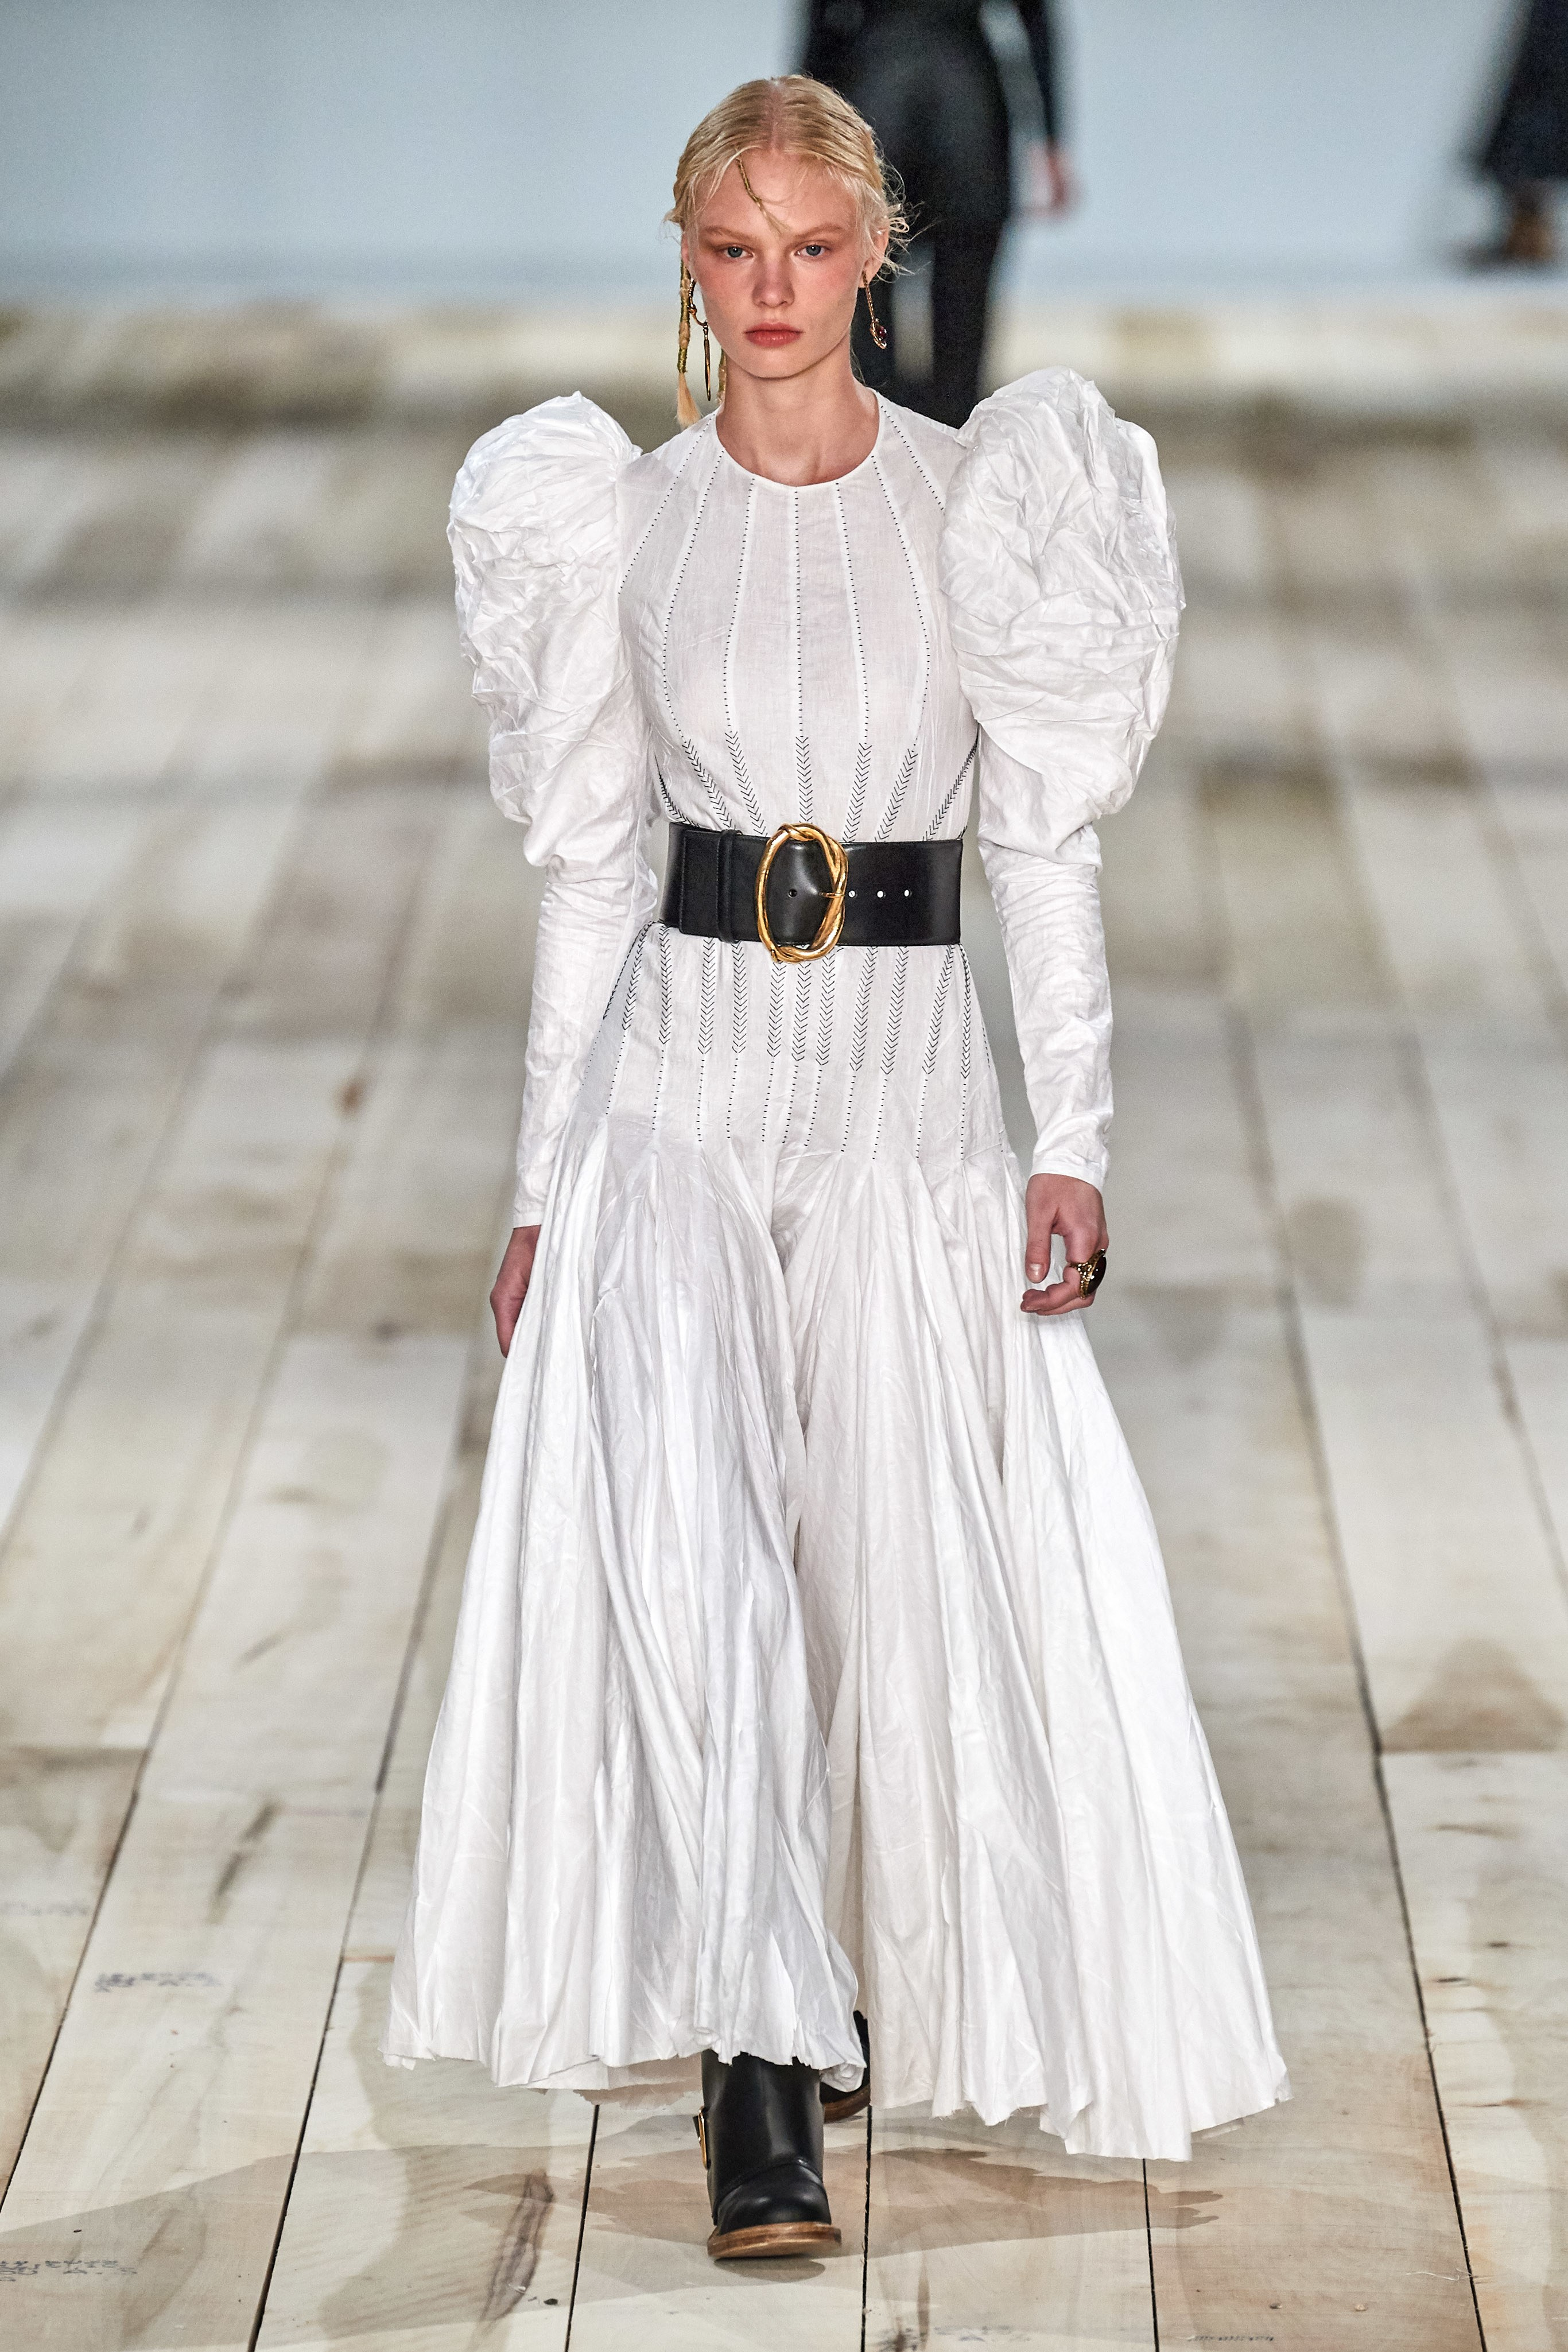 Alexander McQueen Spring ready-to-wear